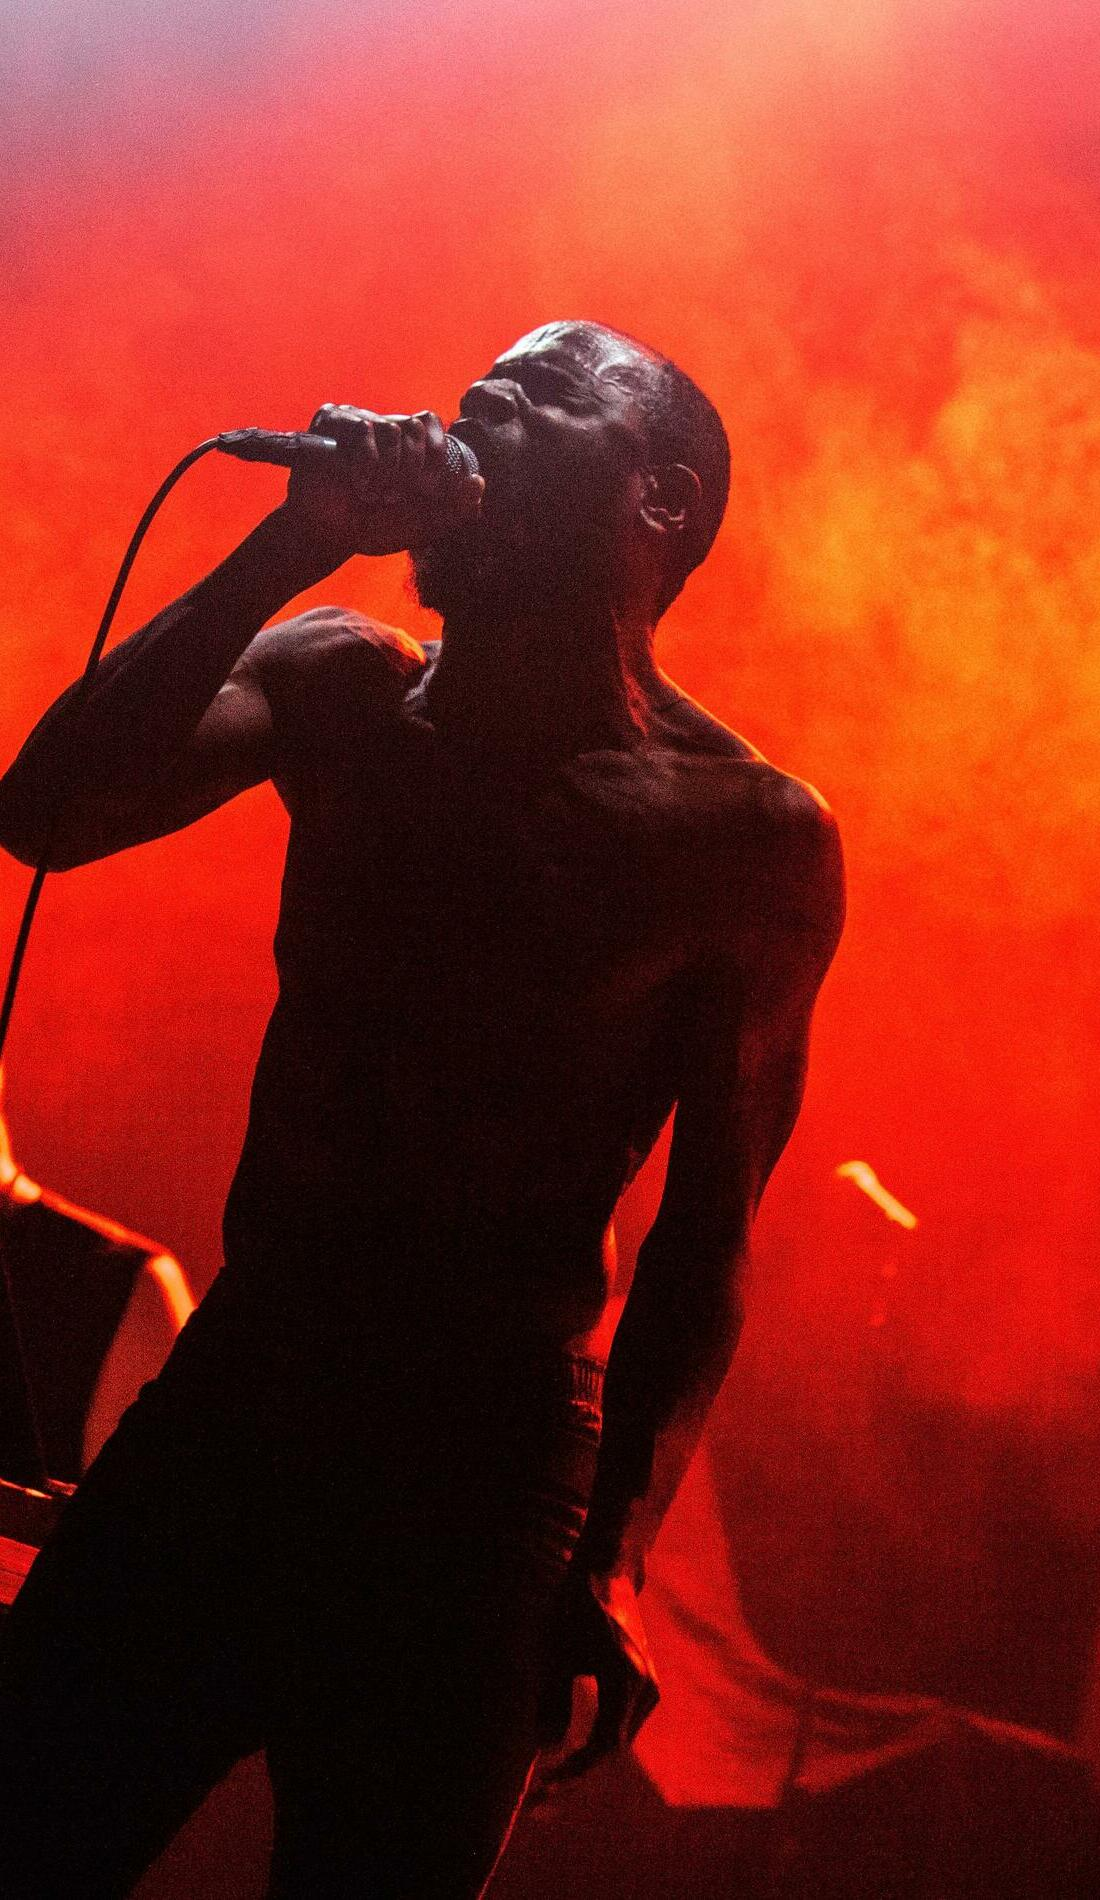 A Death Grips live event